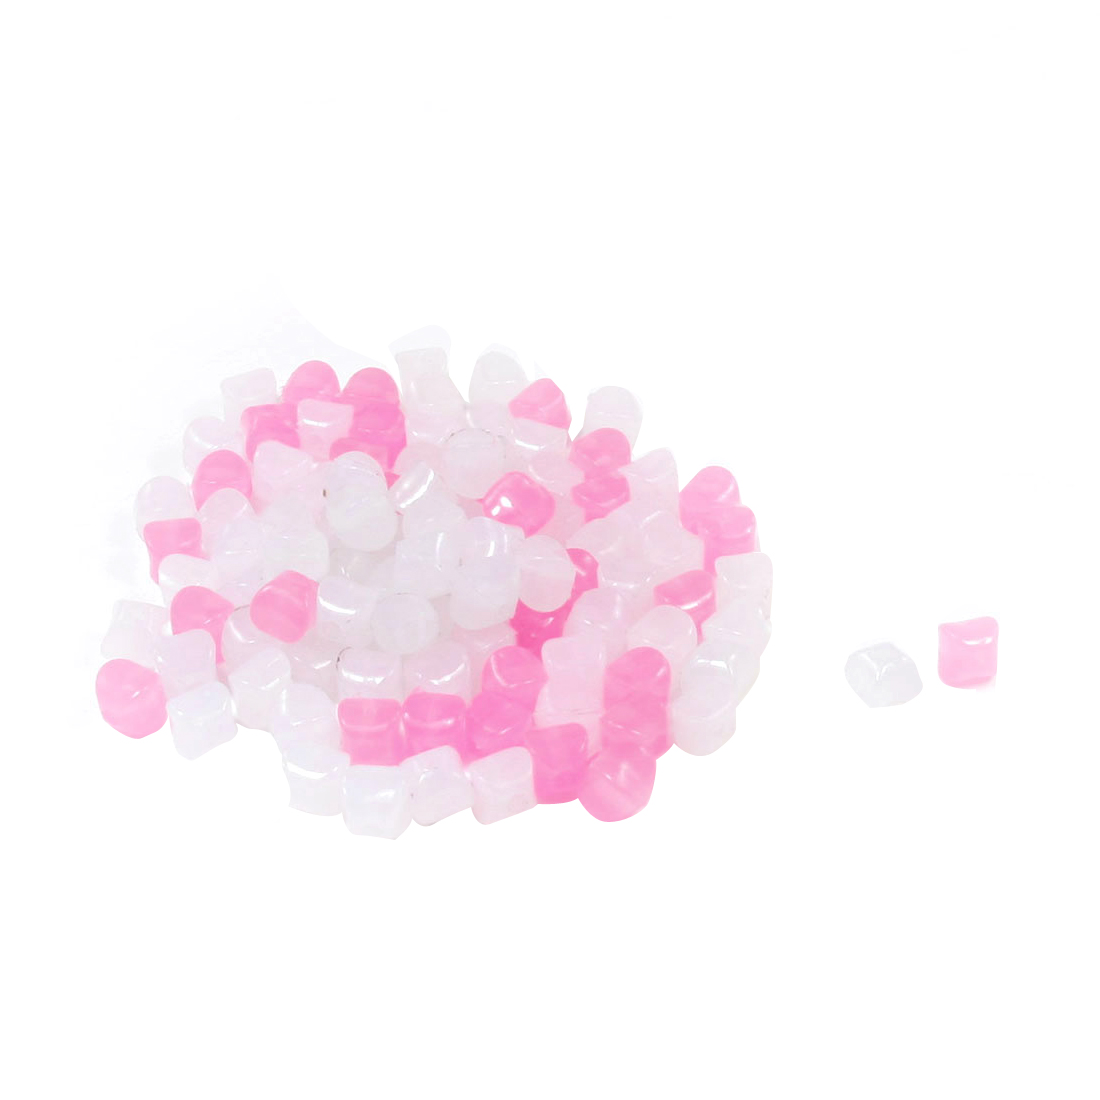 100 Pcs DIY White Pink Plastic 10mm Star Shape Jelly Beads